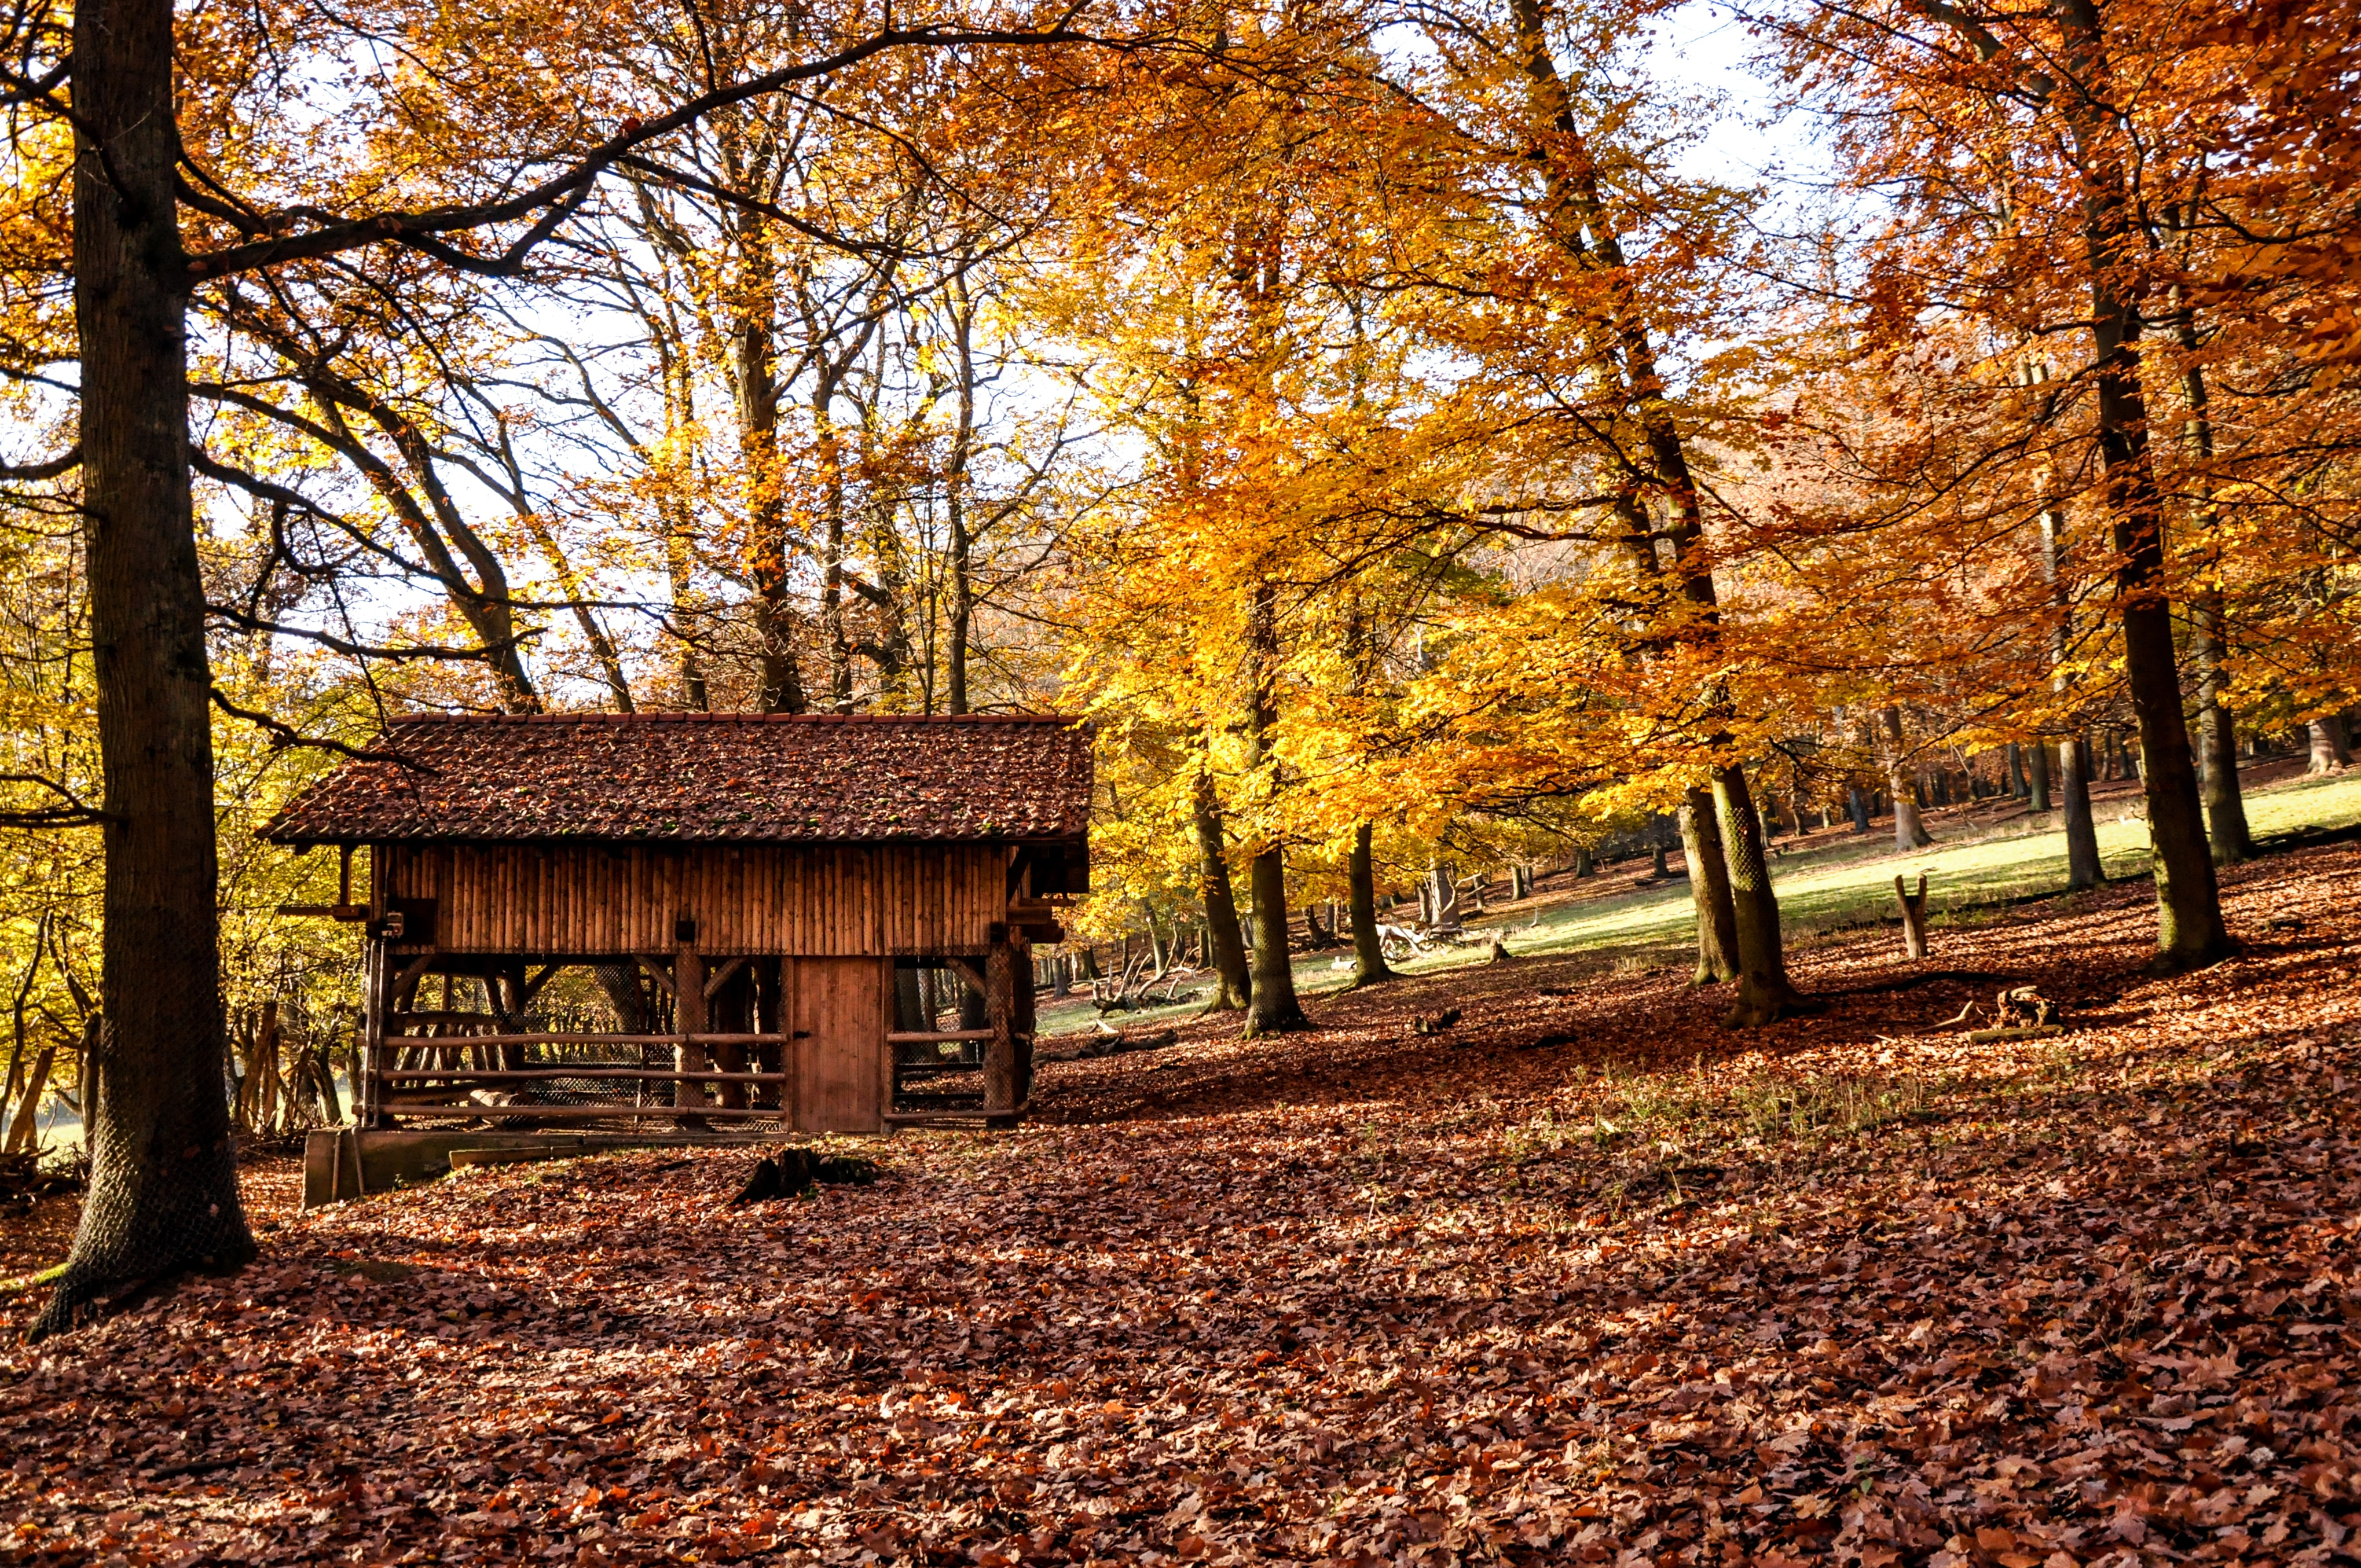 A small shack in a park in the autumn